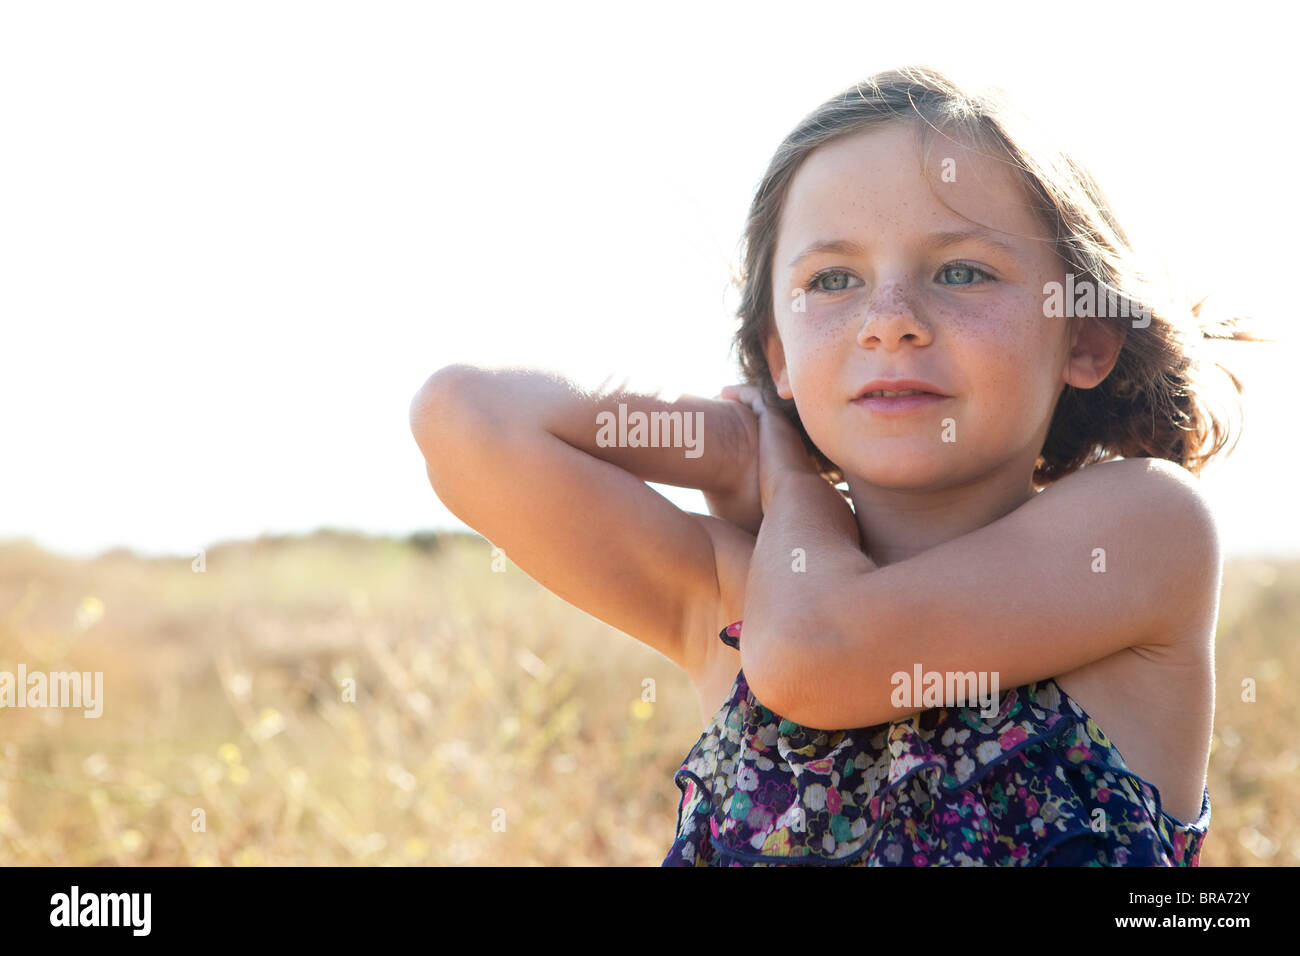 Little girl playing in a field - Stock Image